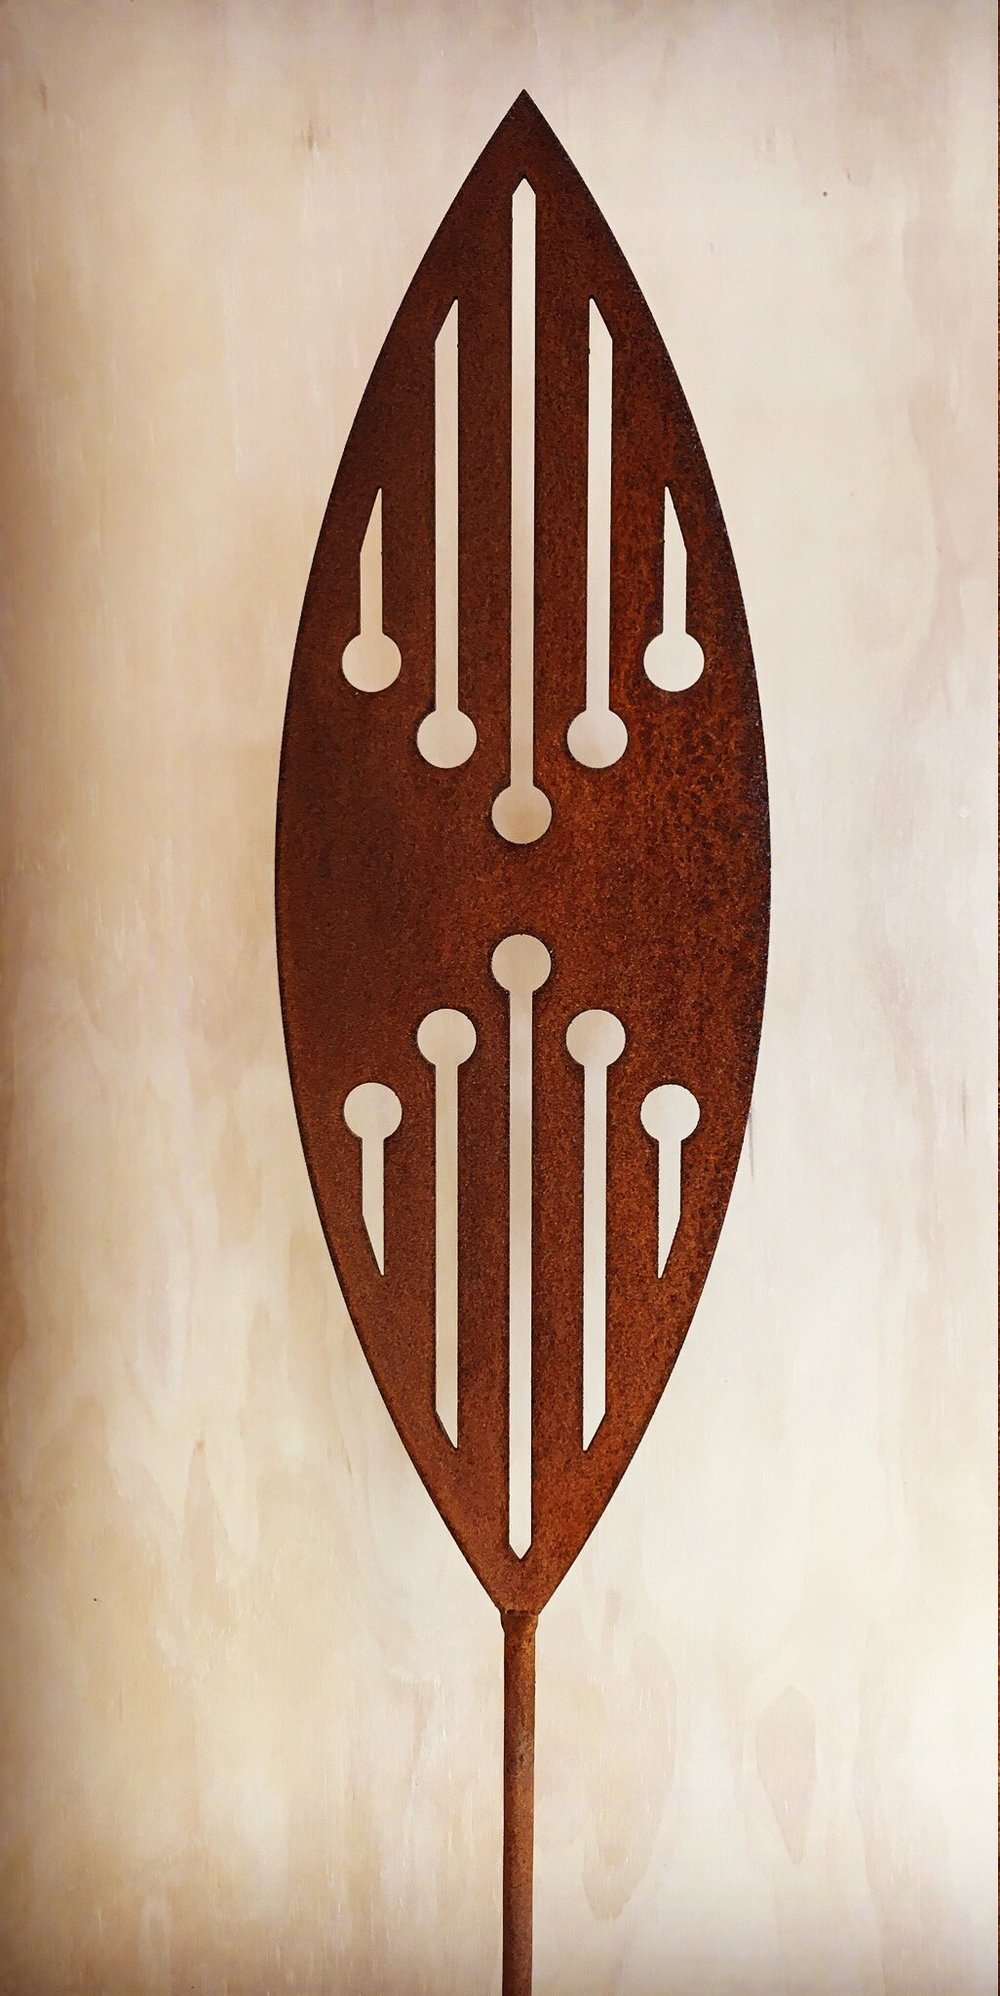 'A Rusty Affair' Corten Reflection  Grounded Art NZ ,  1650mm tall (400mm spear head on a 1250mm rod)  $90.00